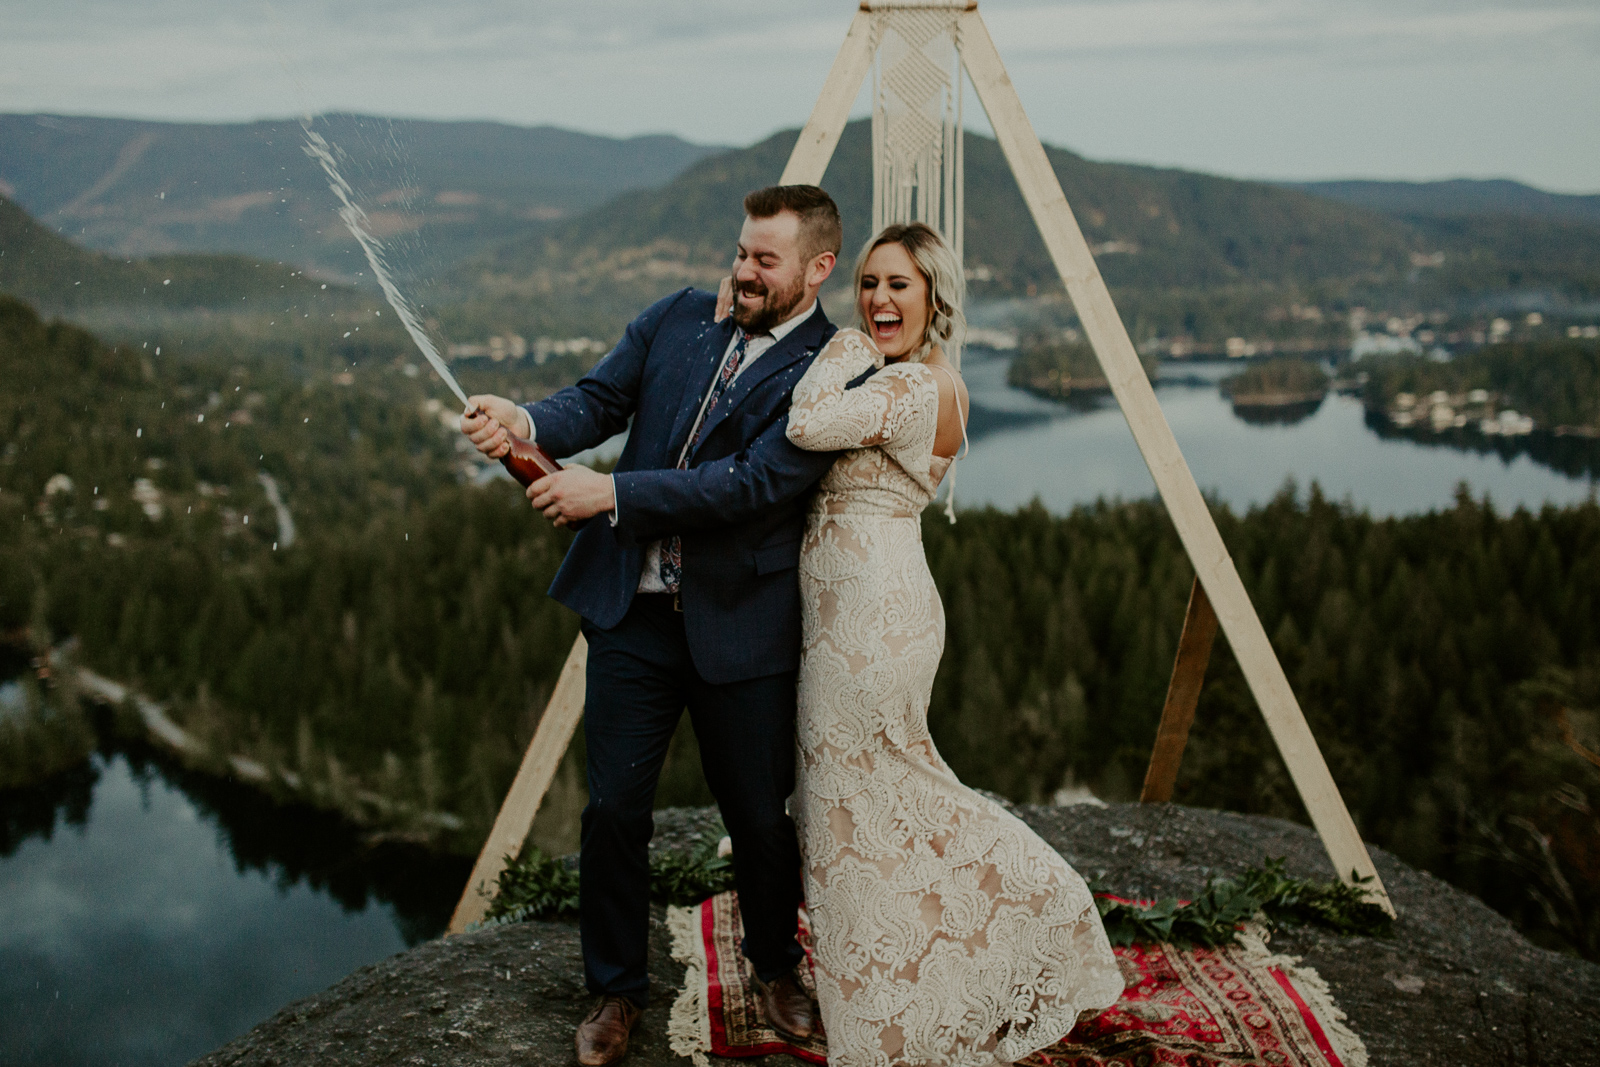 Luke Lambertson Photo_BritishColumbia_Canada_AdventurousCouple_Elopement_IMG-8777.jpg